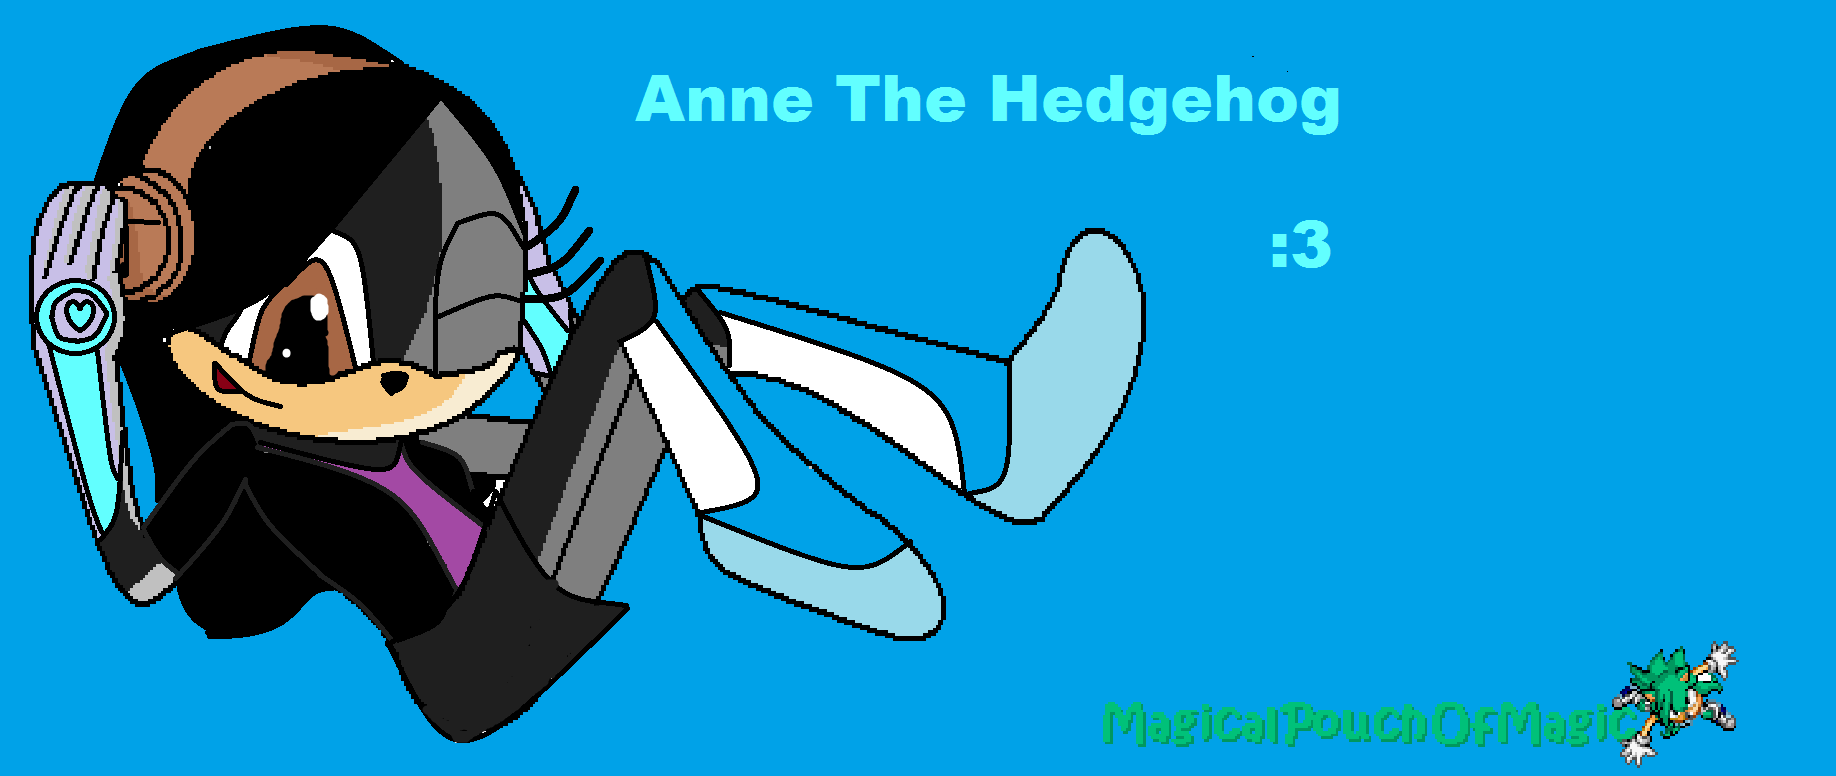 Anne The Hedgehog